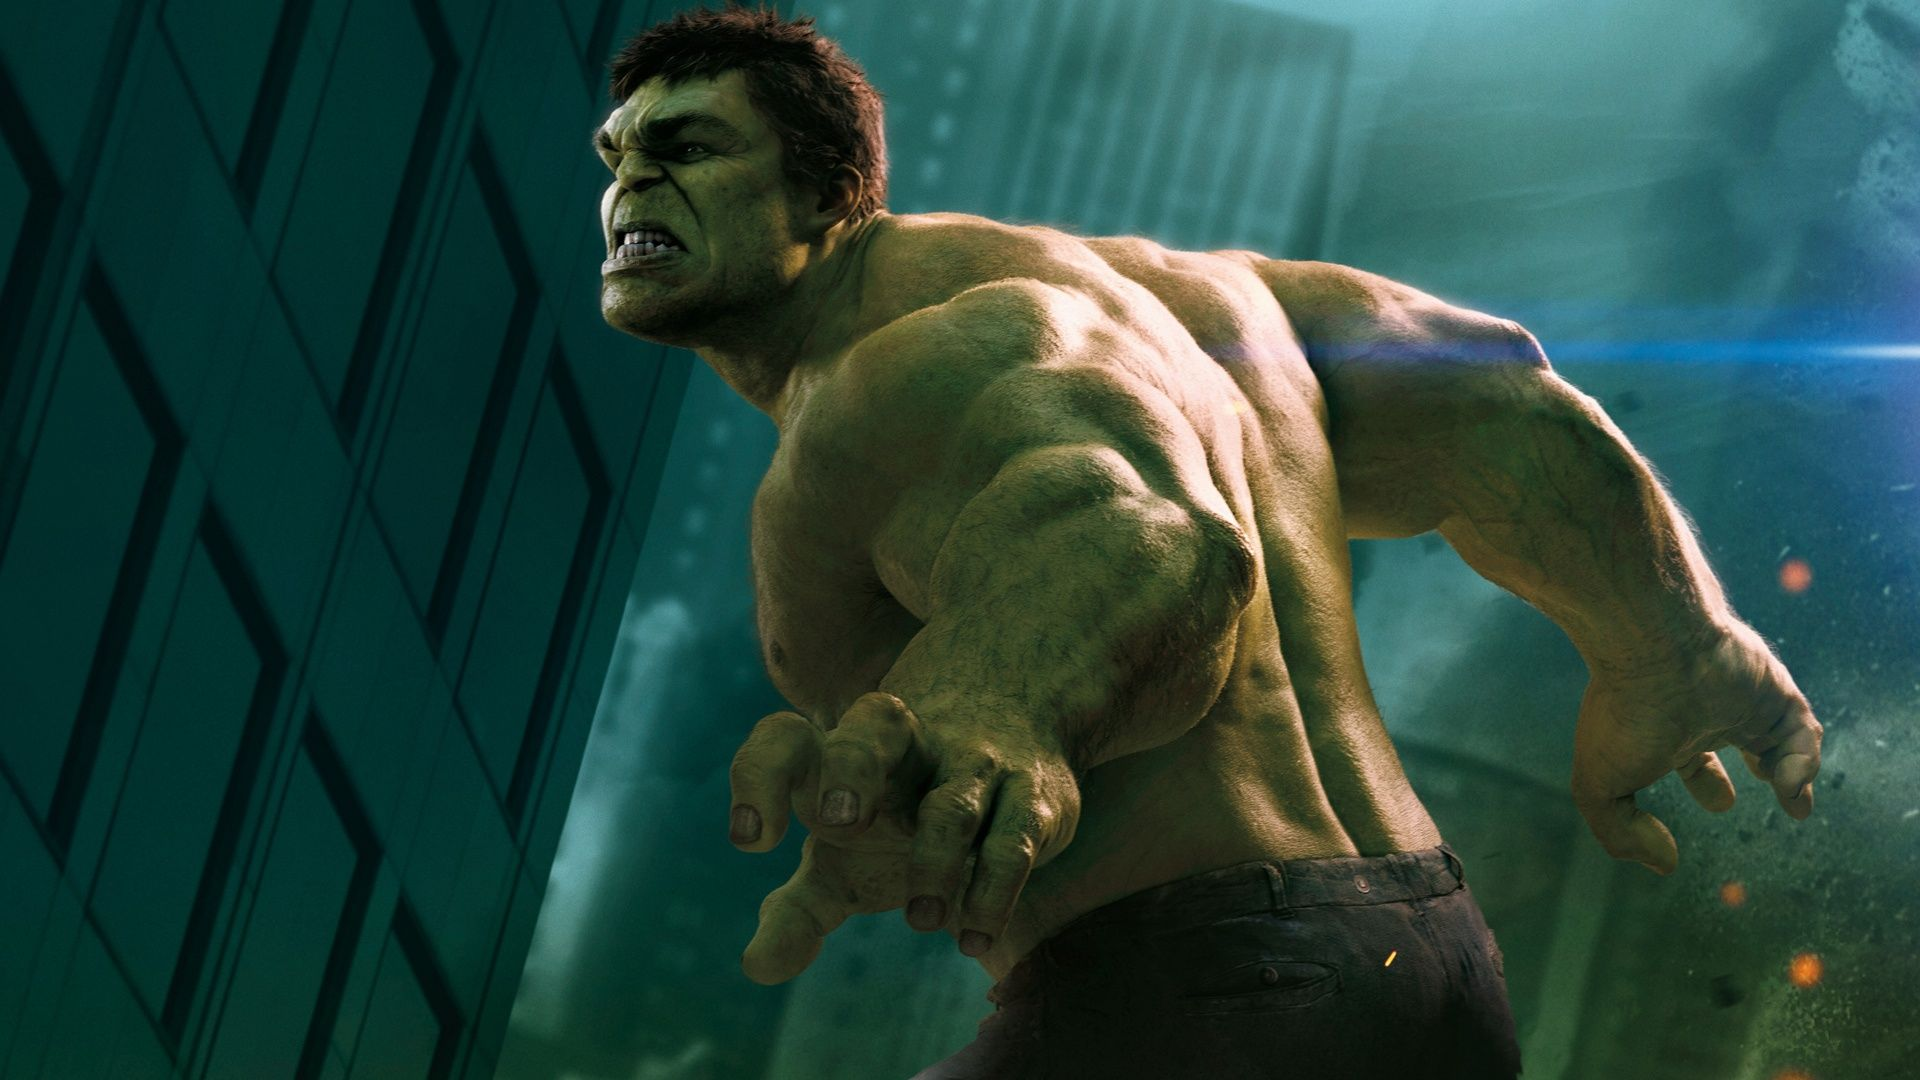 hd wallpapers widescreen 1080p 3d | hulk in the avengers wallpapers